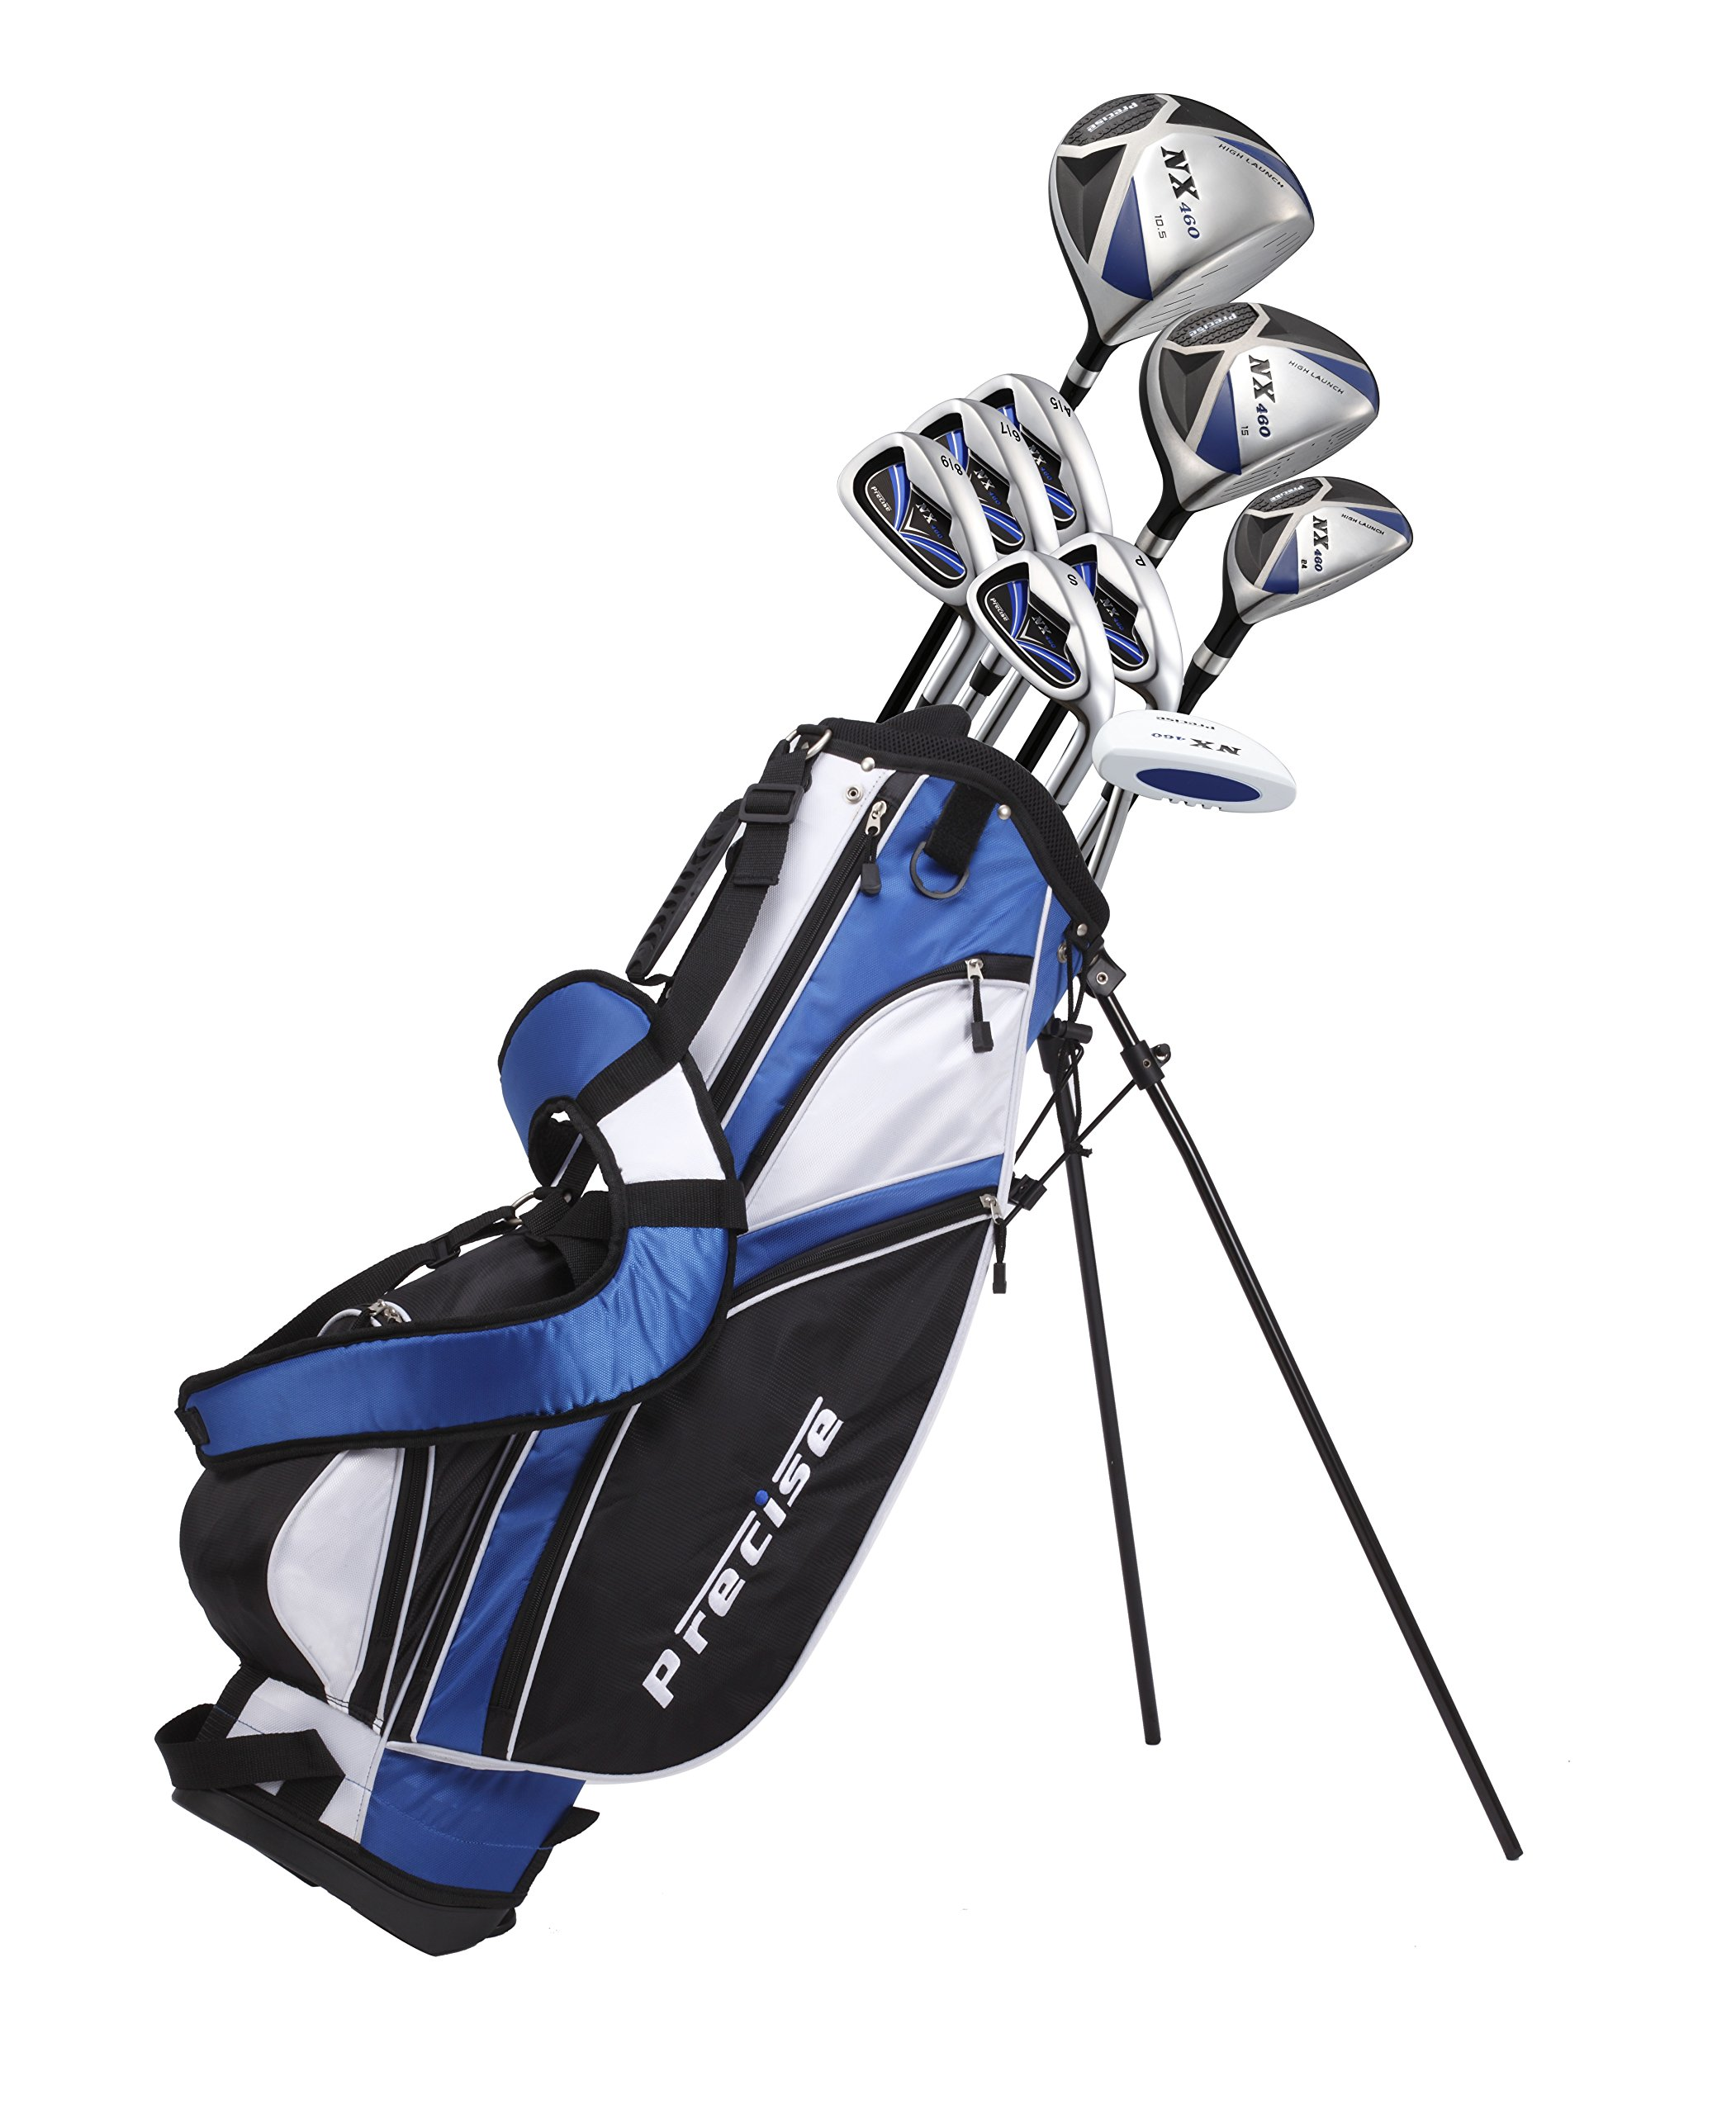 Men's Right Handed +1'' inch Tall Complete Golf Club Set, Custom Made for Golfers 6'0'' - 6'6'' Height